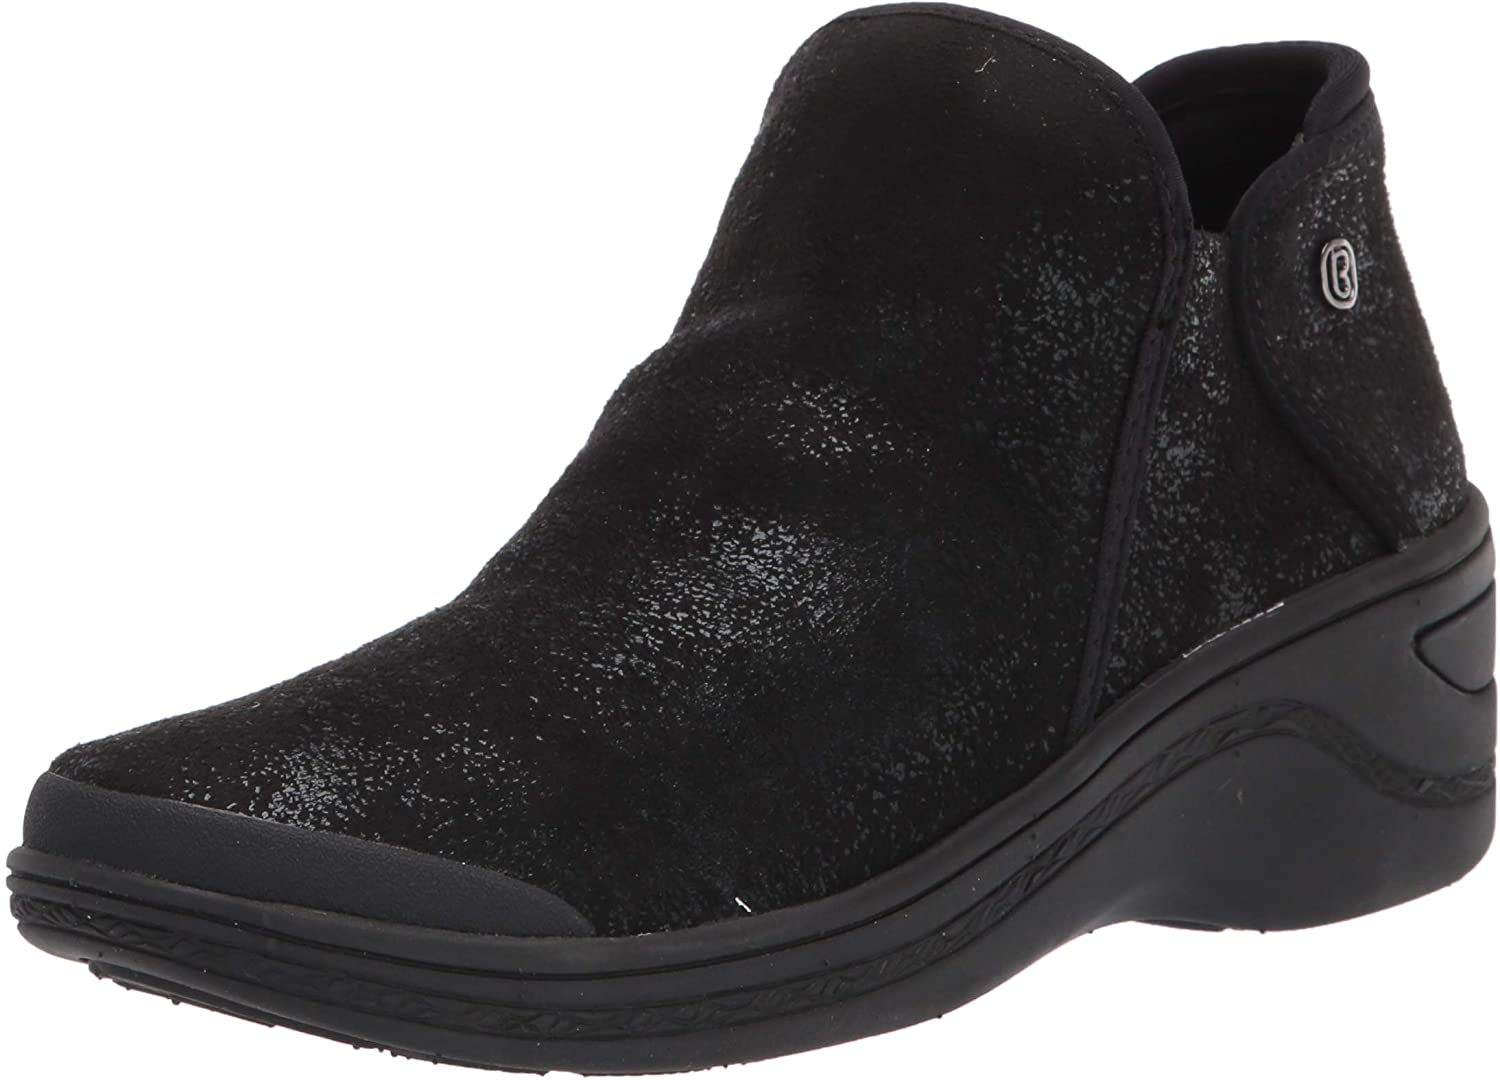 OFFicial BZees Luxury goods Women's Domino Ankle Boot